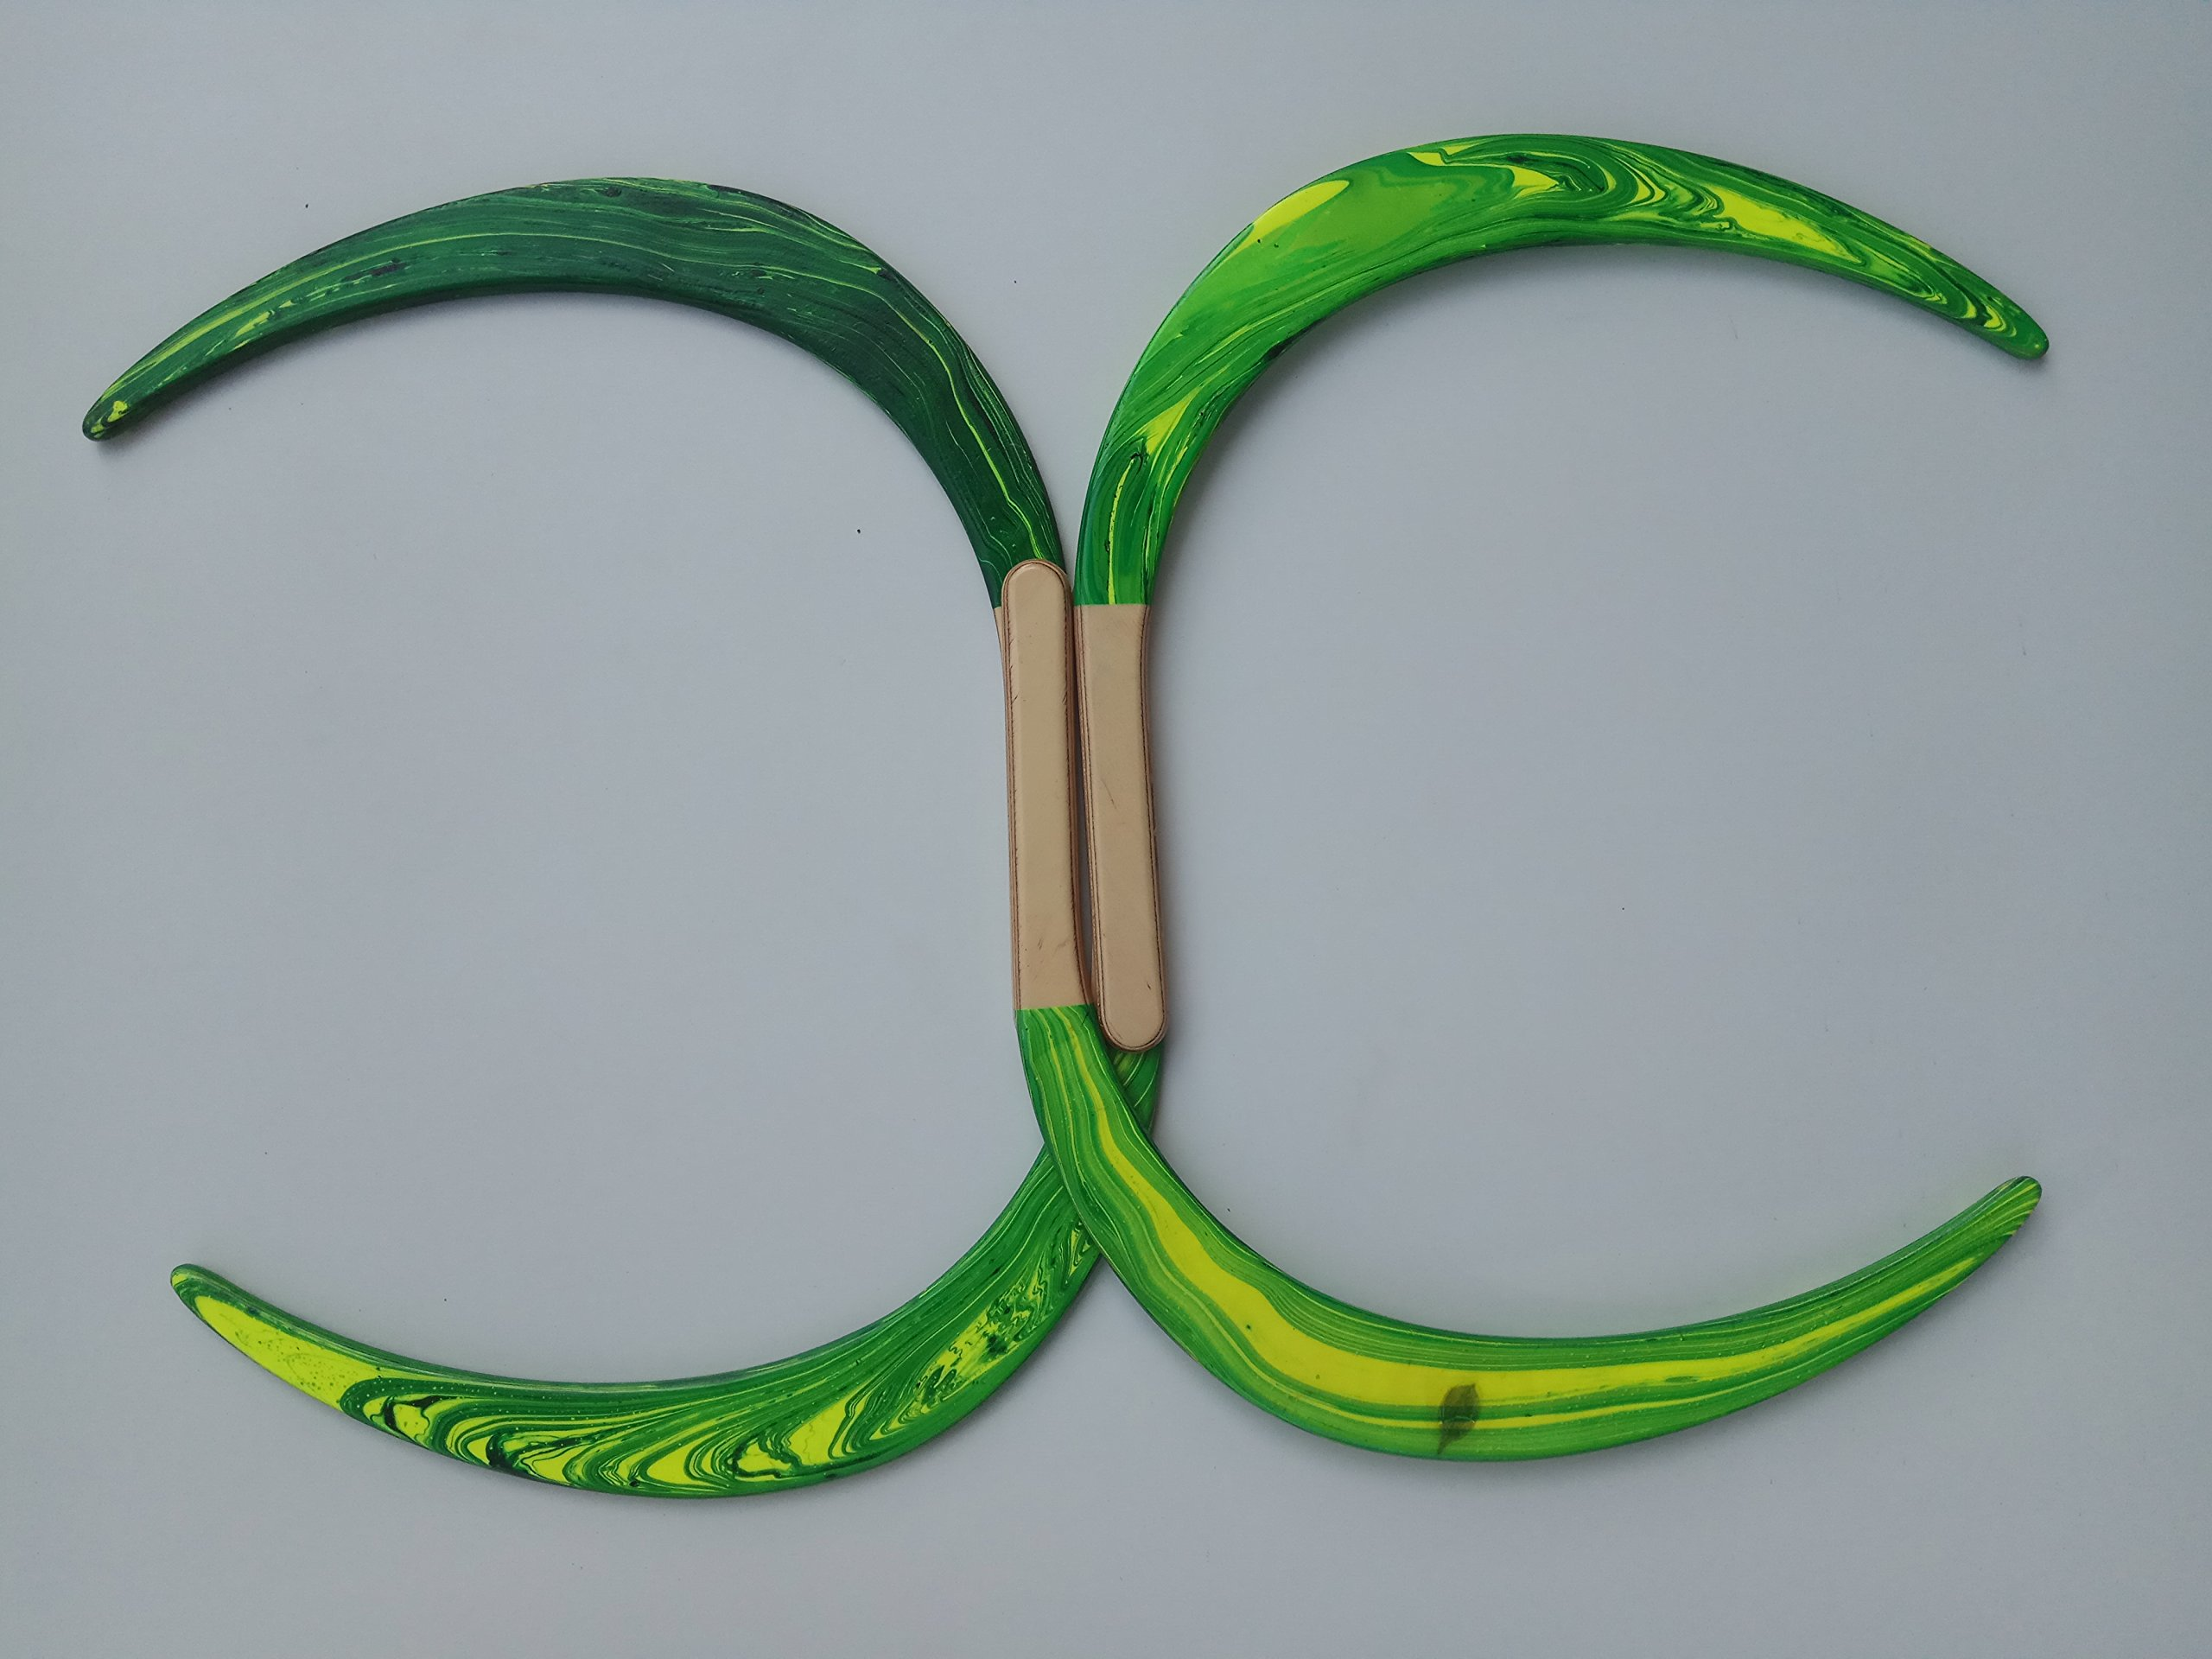 Swirl Buugeng Juggling S Staff S Staves Bugeng Hand Made 2 Pieces Yellow and Green Glows in UV Carry Bag by Buugeng Flow Master J.A.H (Image #8)